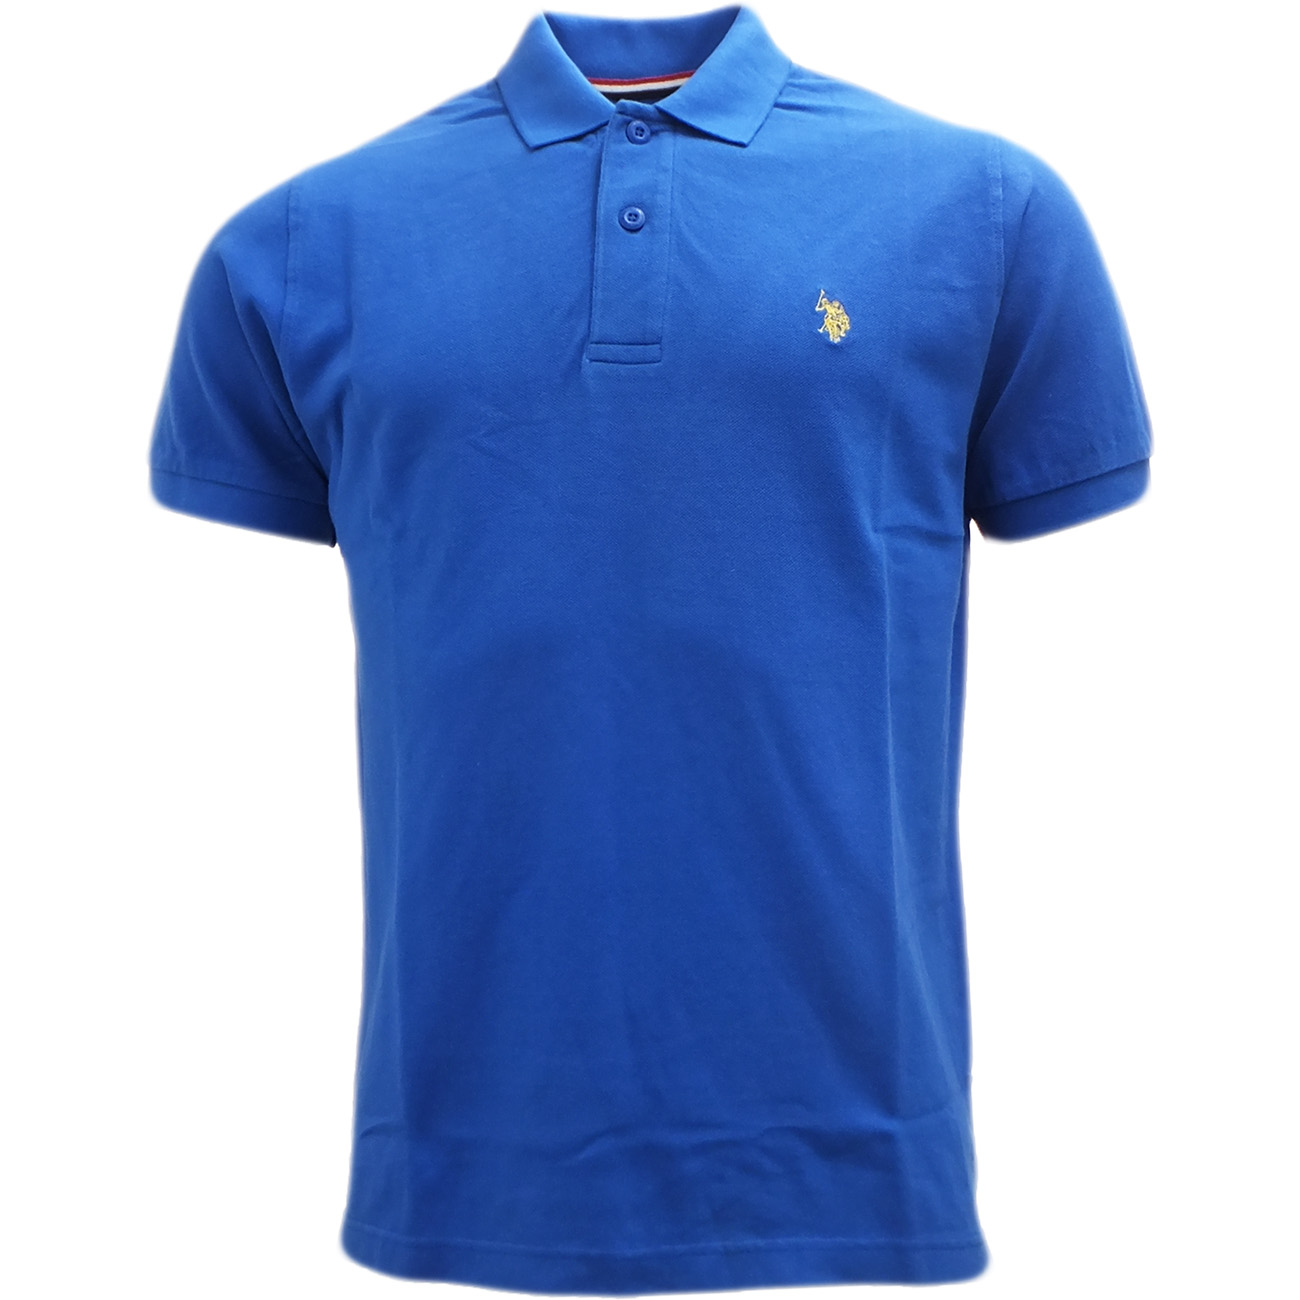 Mens polo shirt u s polo assn plain polos horse logo for Order polo shirts with logo